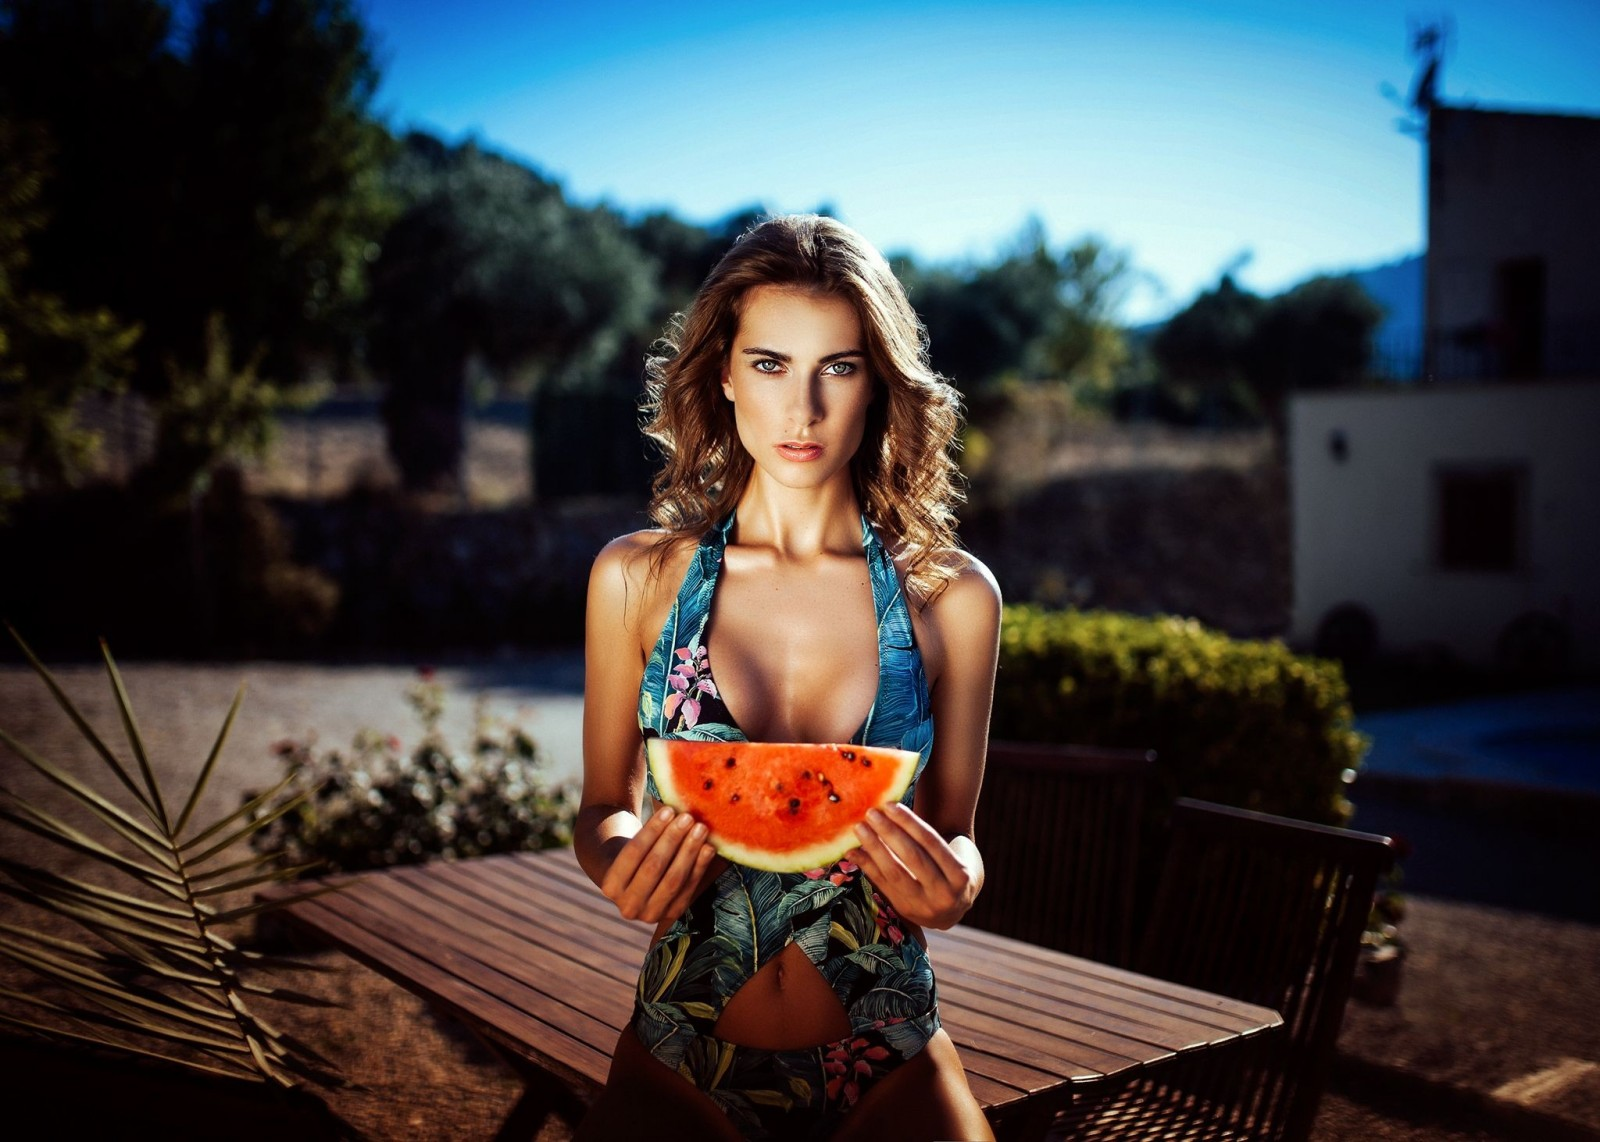 17 - 17 Girls With Their Watermelons To Give You A Taste Of Watermelonday